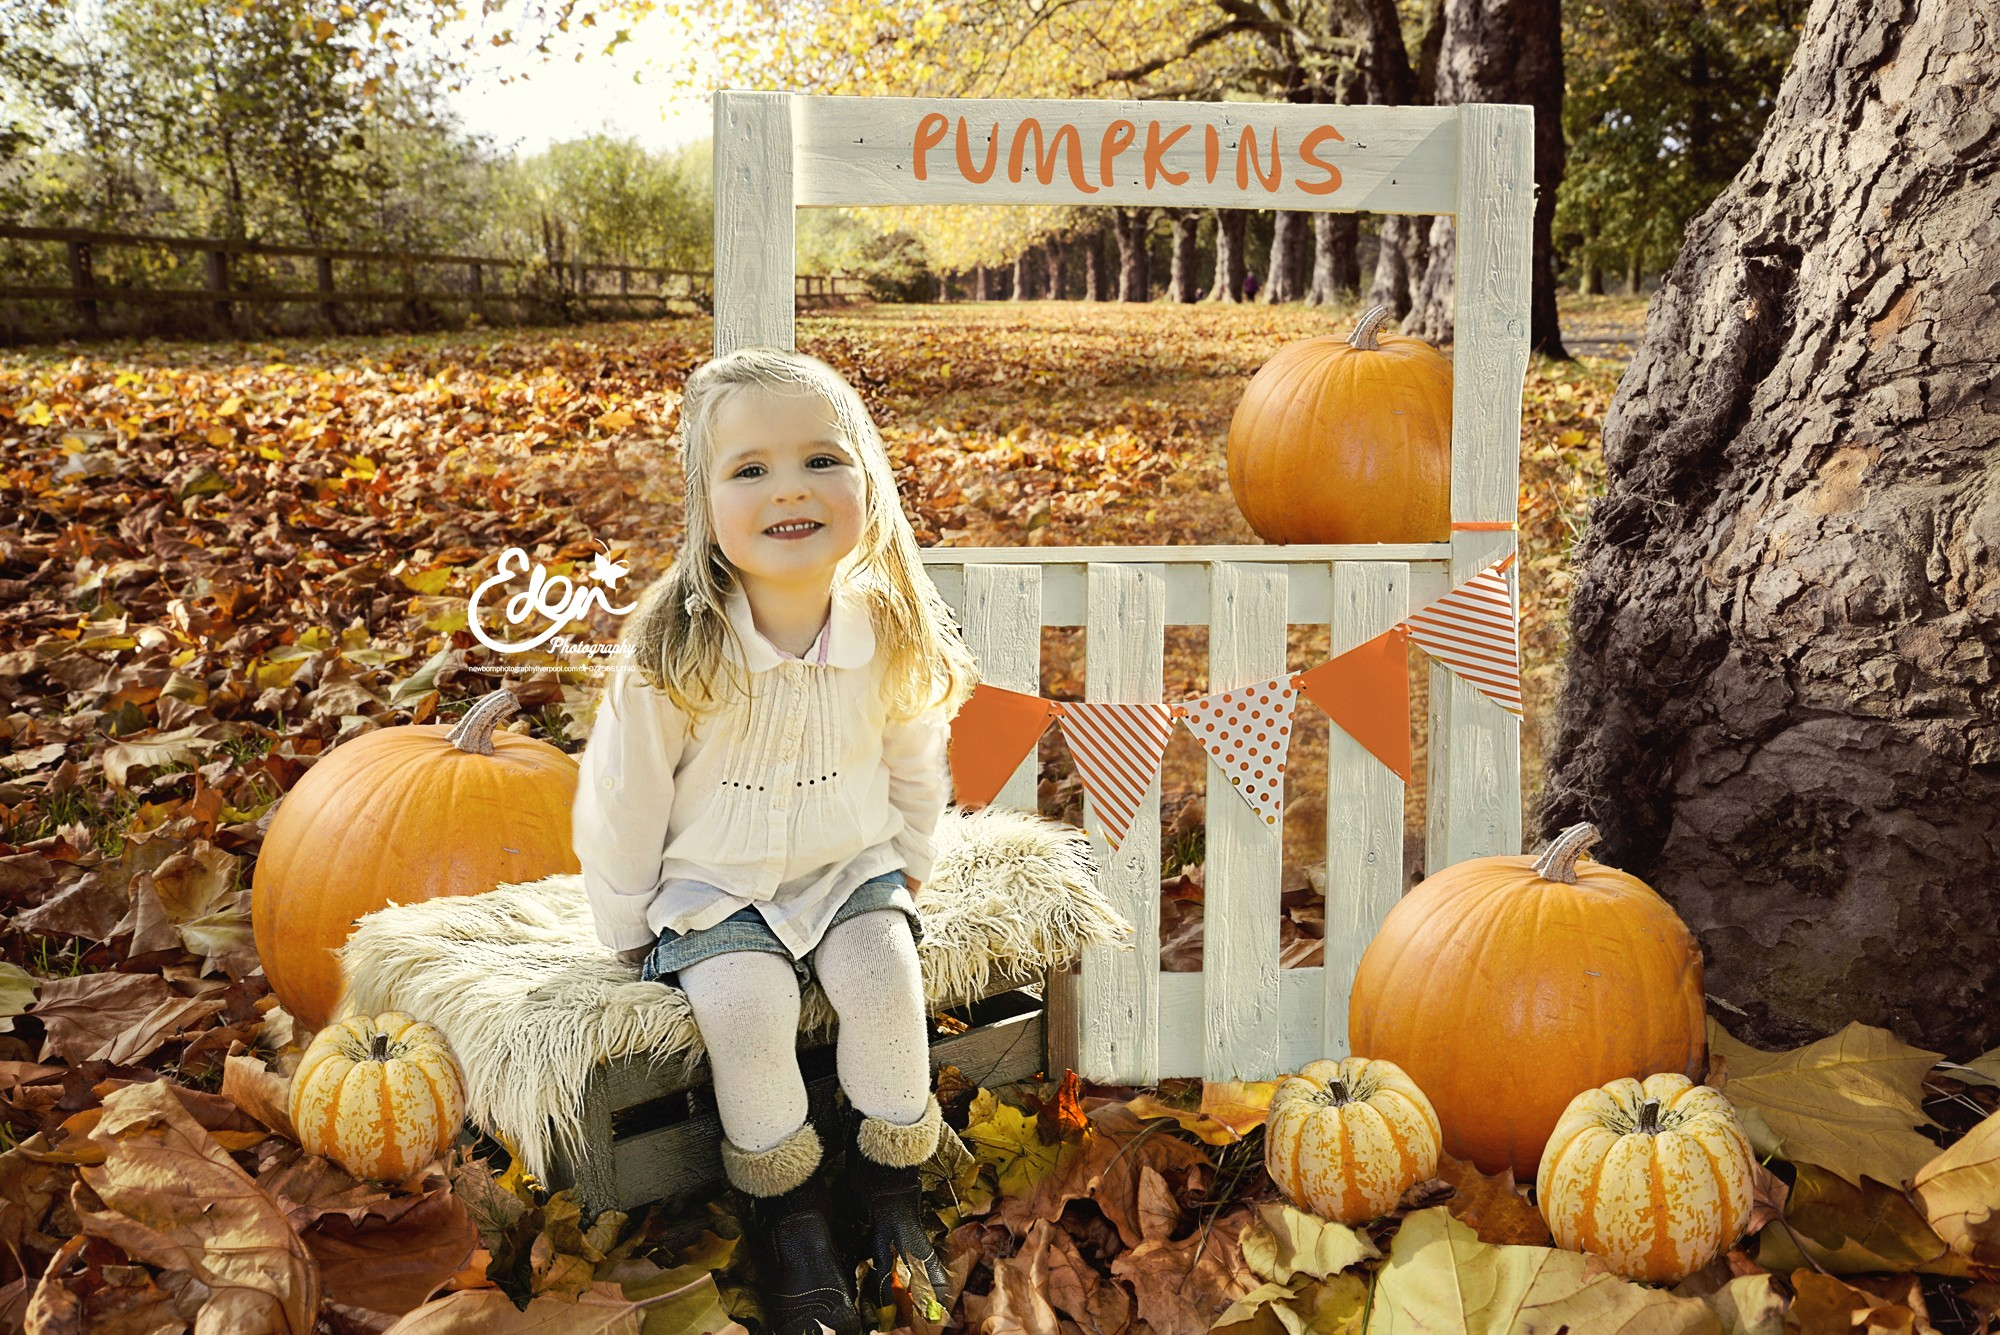 Autumn Photography Liverpool - Girl sitting in front of pumpkin stand with pumkins